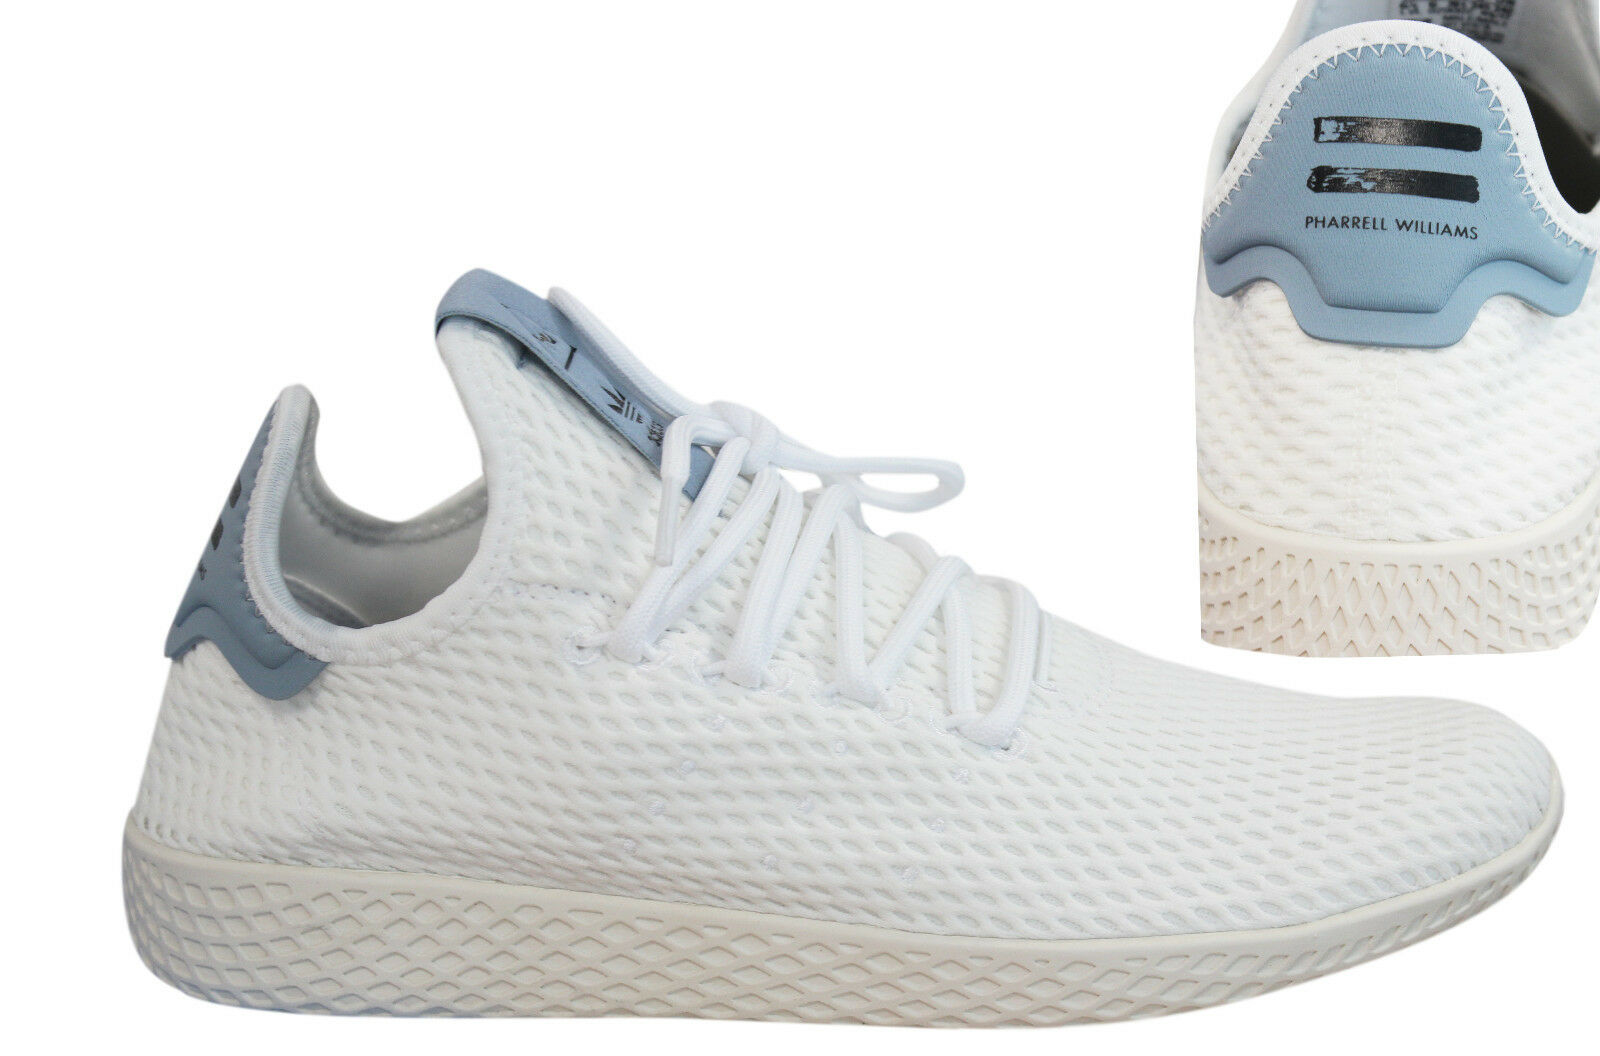 Pharrell williams adidas originali tennis by8718 hu Uomo formatori merletto by8718 tennis m17 5ad64f